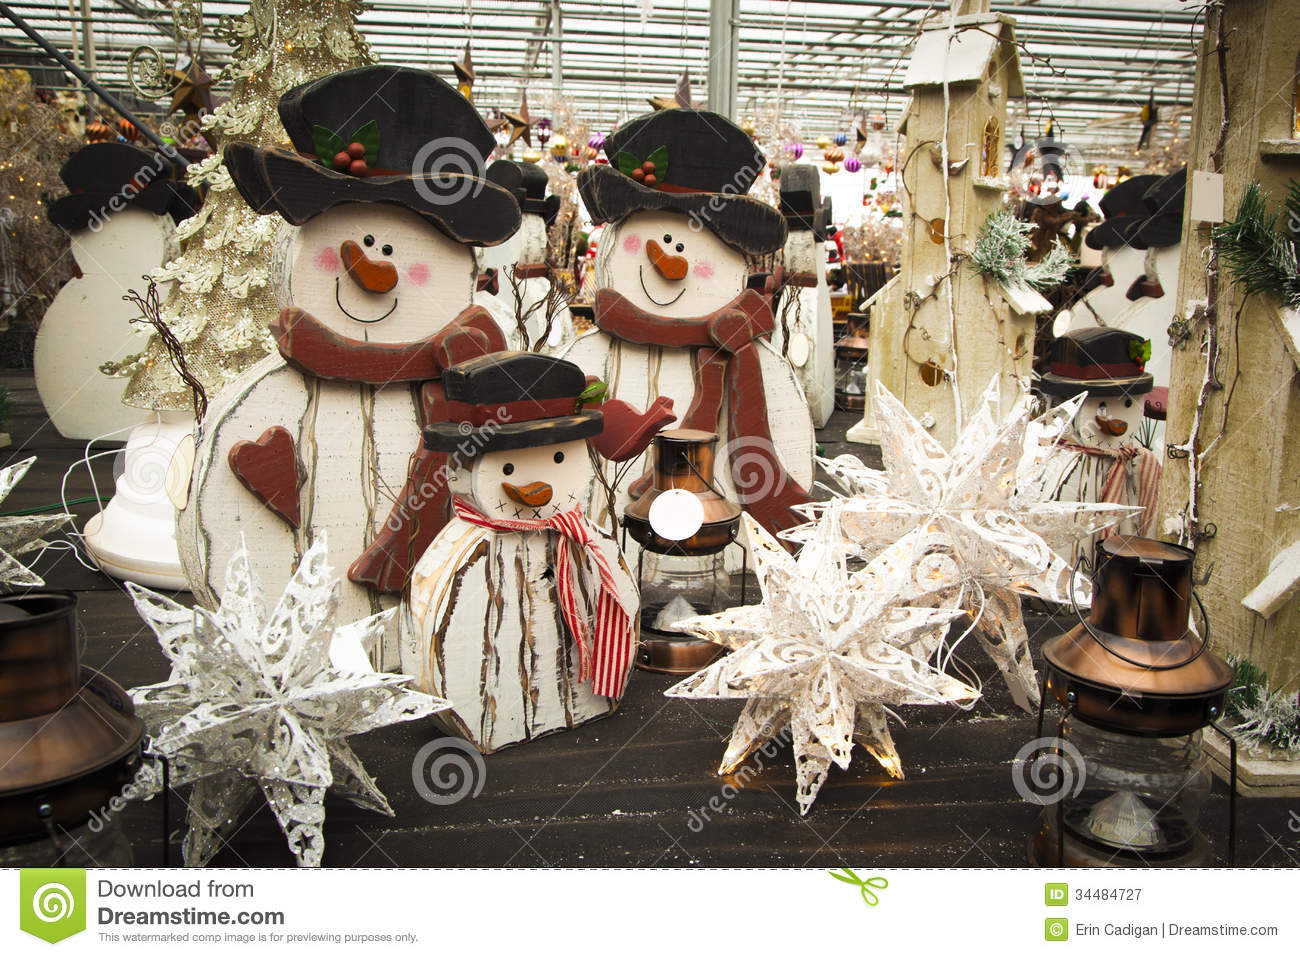 Christmas decorations for sale royalty free stock for Christmas decorations sale online